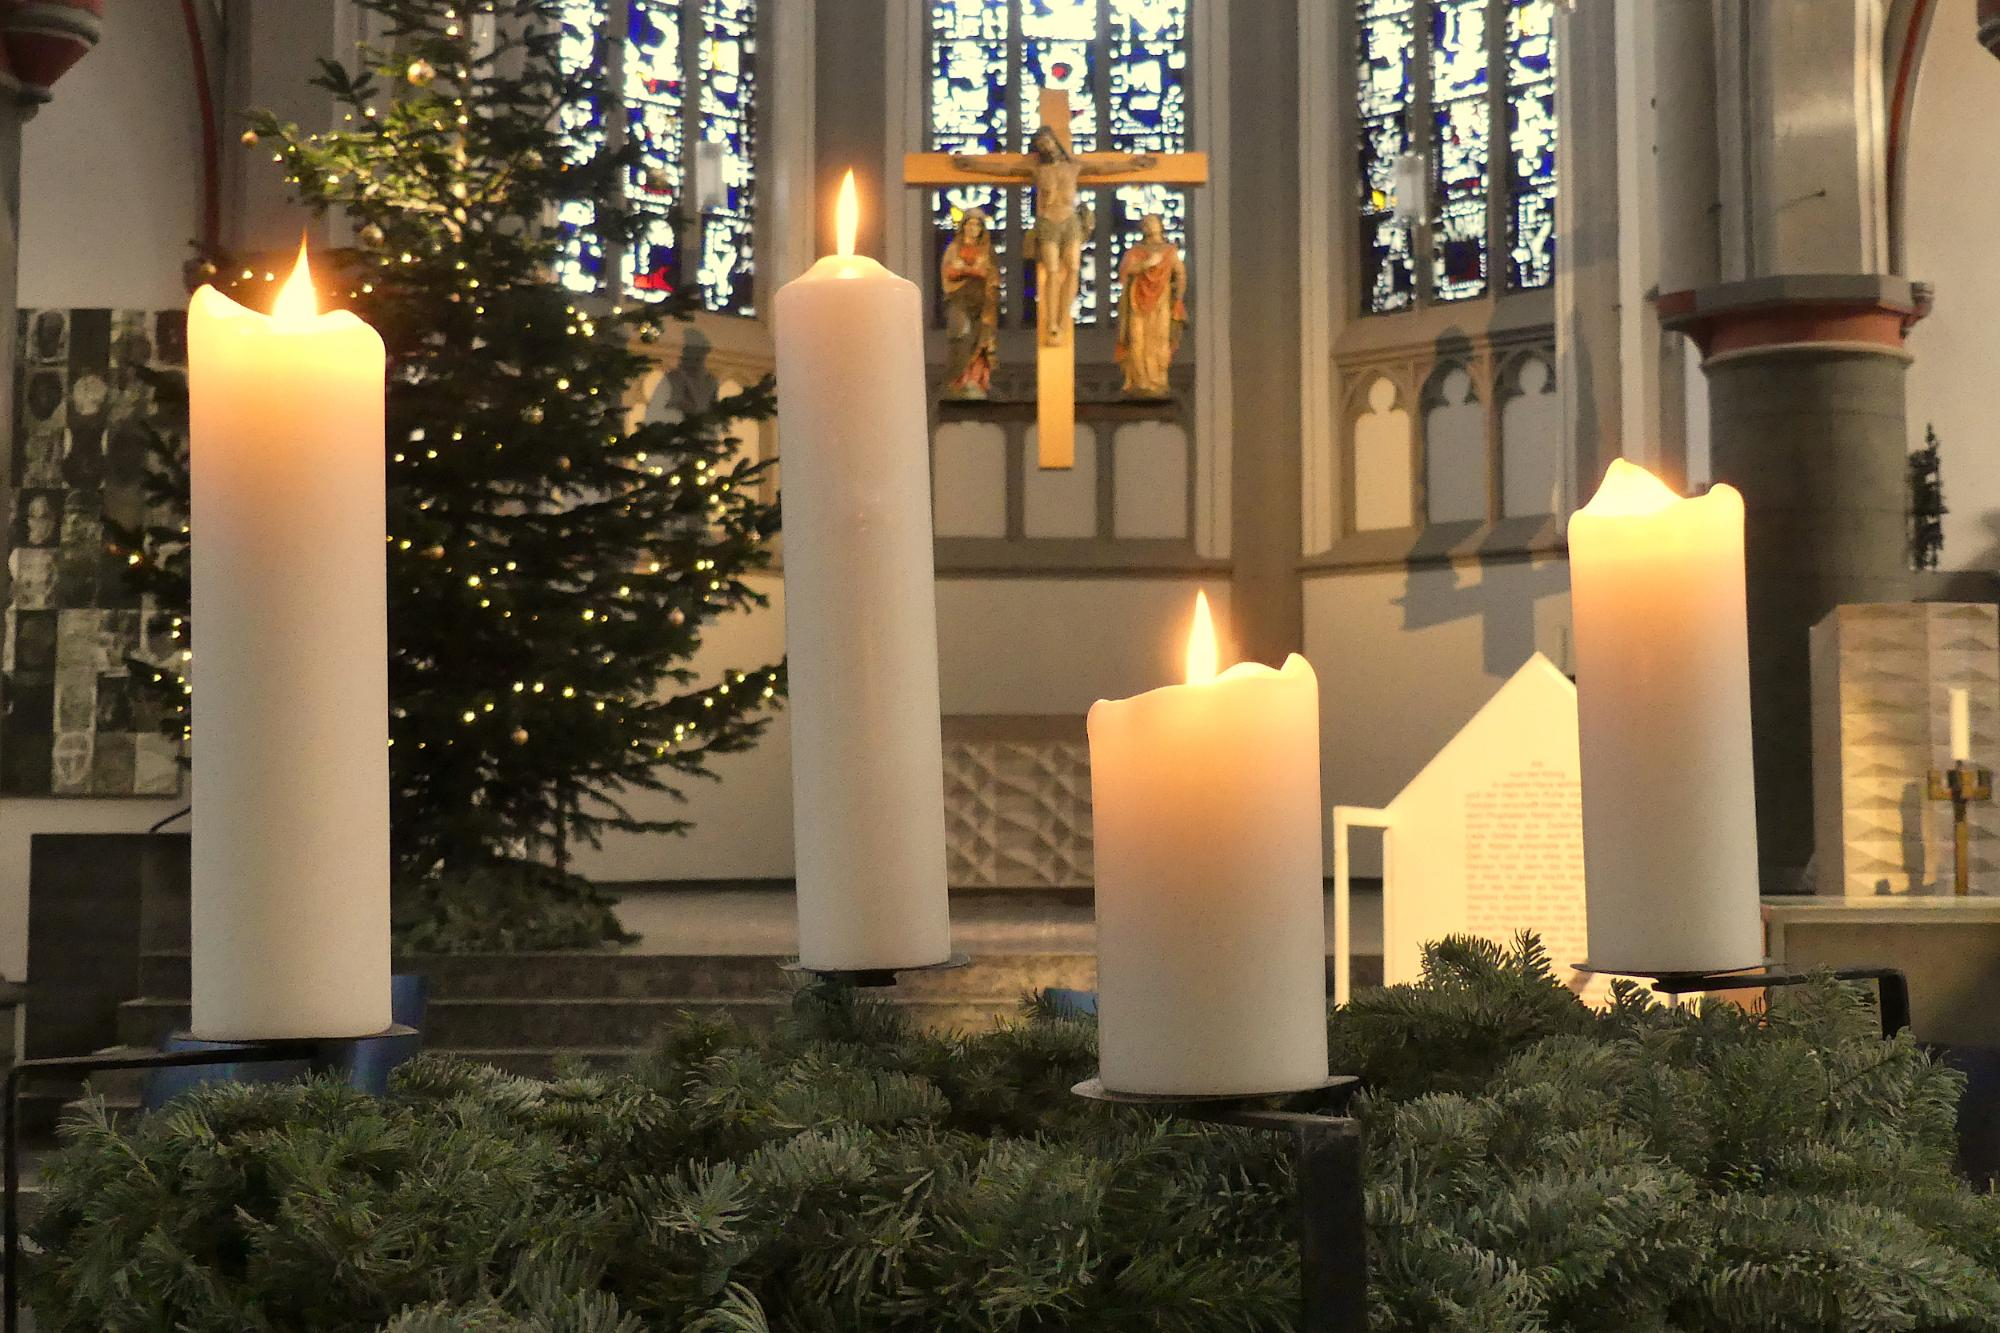 2020_12_Adventskranz 4.Advent (c) J. Barrawasser